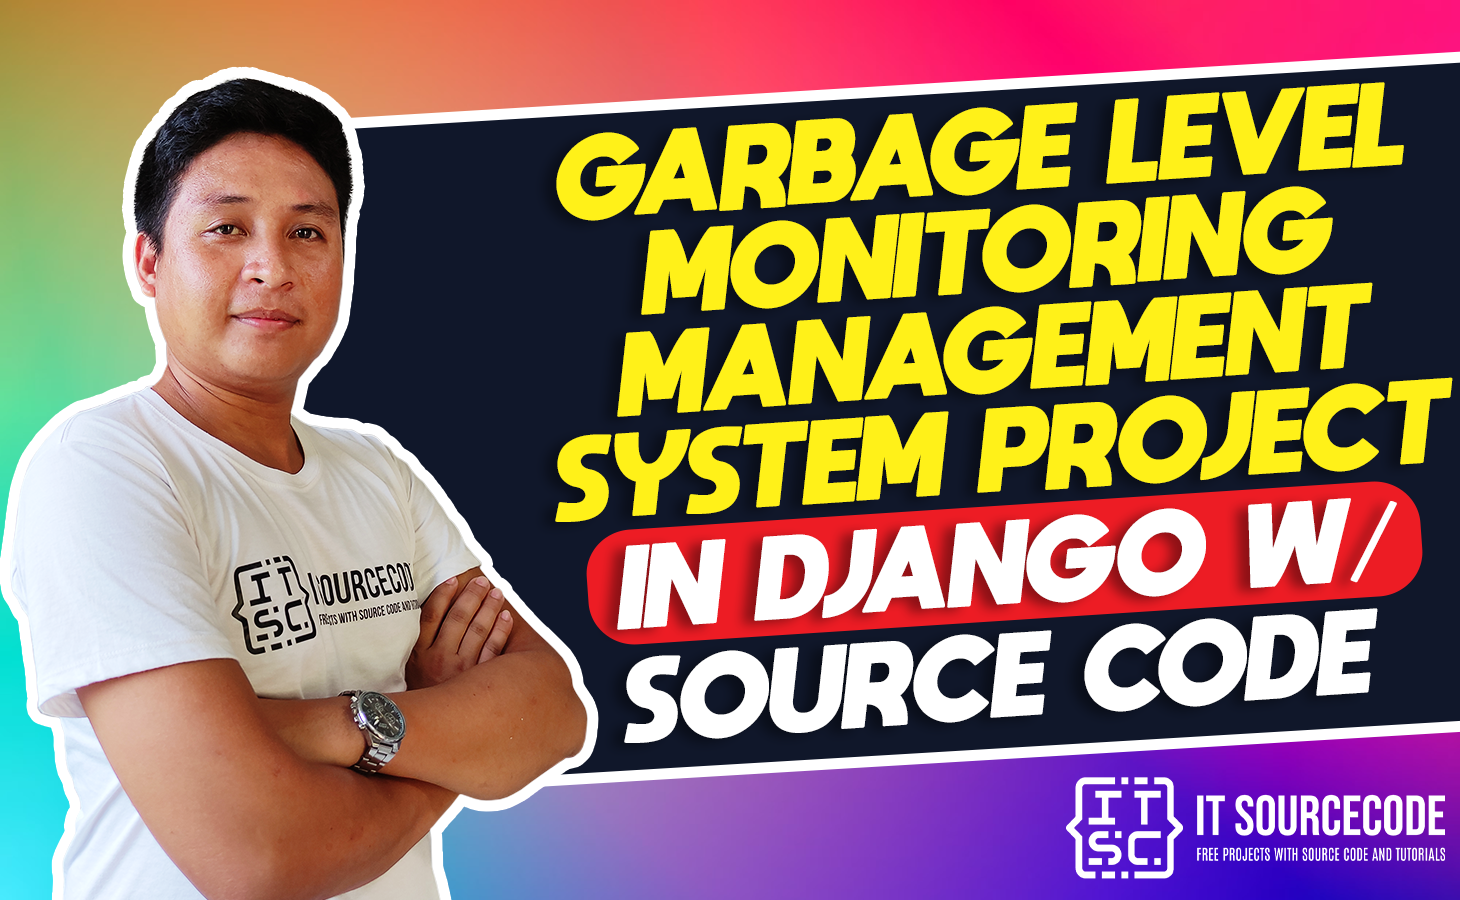 Garbage Level Monitoring System Project in Django with Source Code